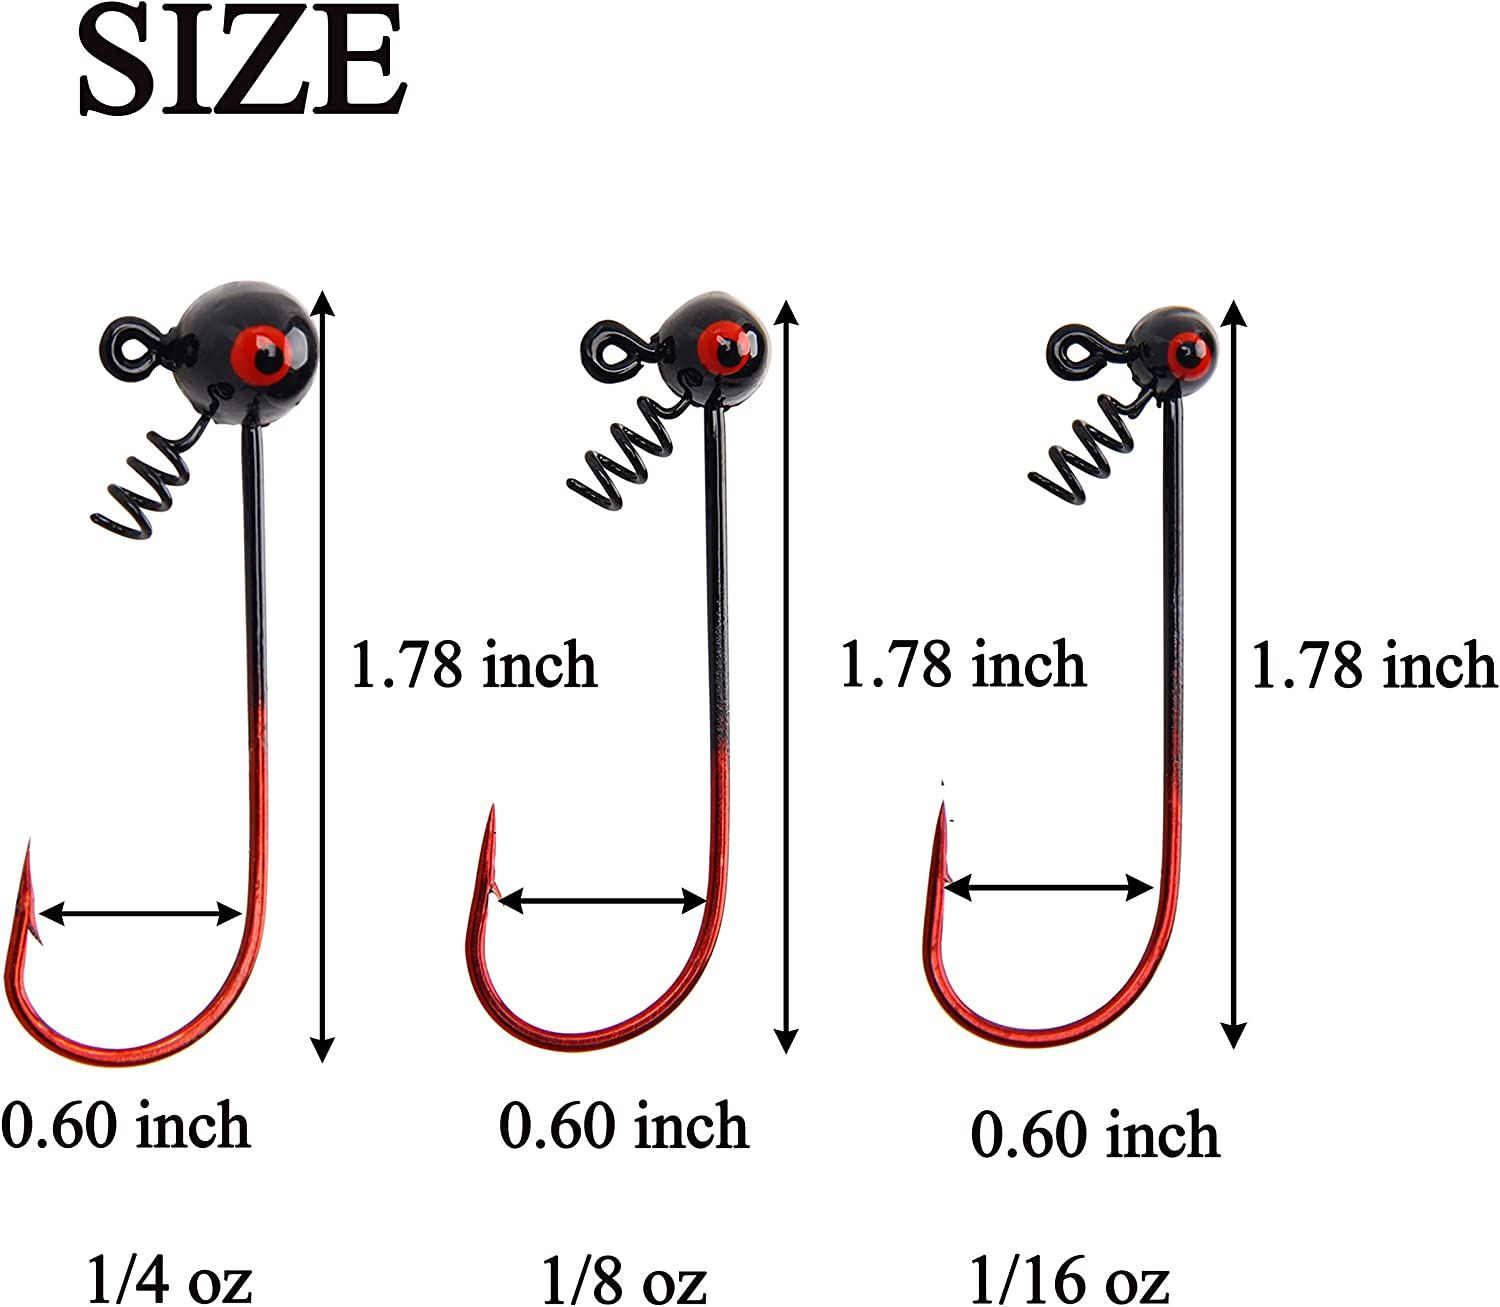 Lead Round Ball Head Jigs with Screw in Barb Secure Spring Designed for Catching Big Fish Saltwater and Freshwater 5//10pcs AGOOL Fishing Shakey Head Jig Hooks